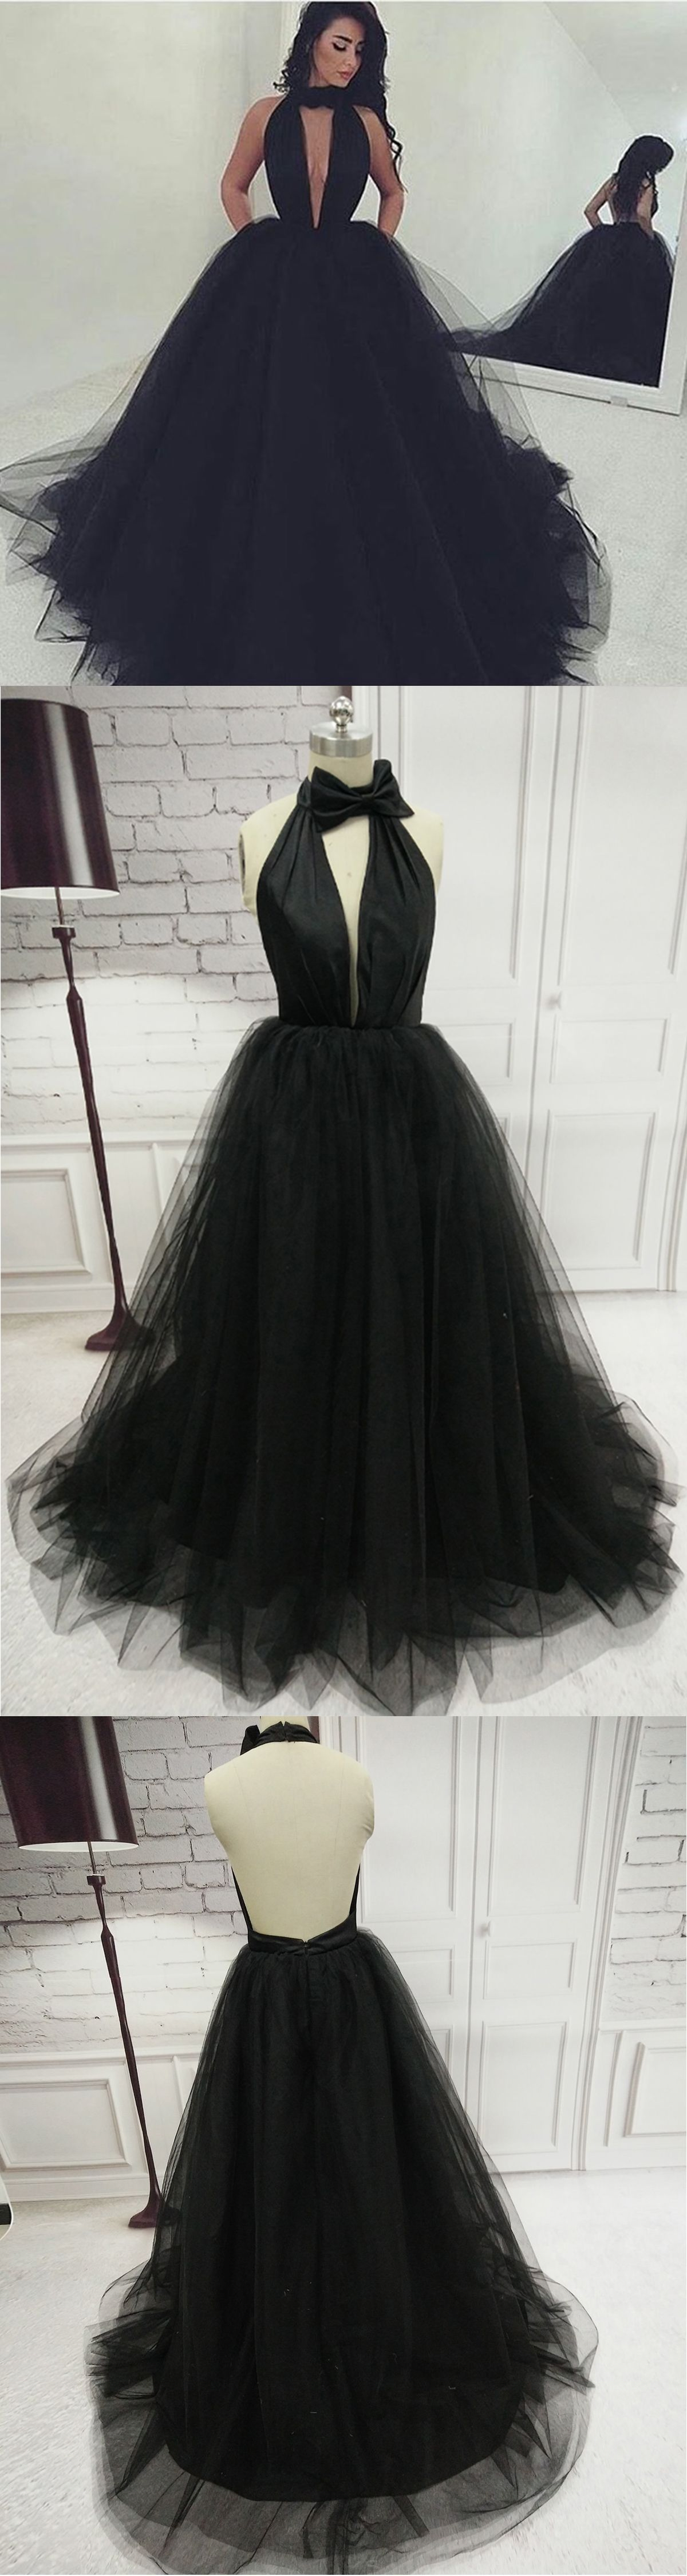 Simple black tulle backless long evening dress long tulle party